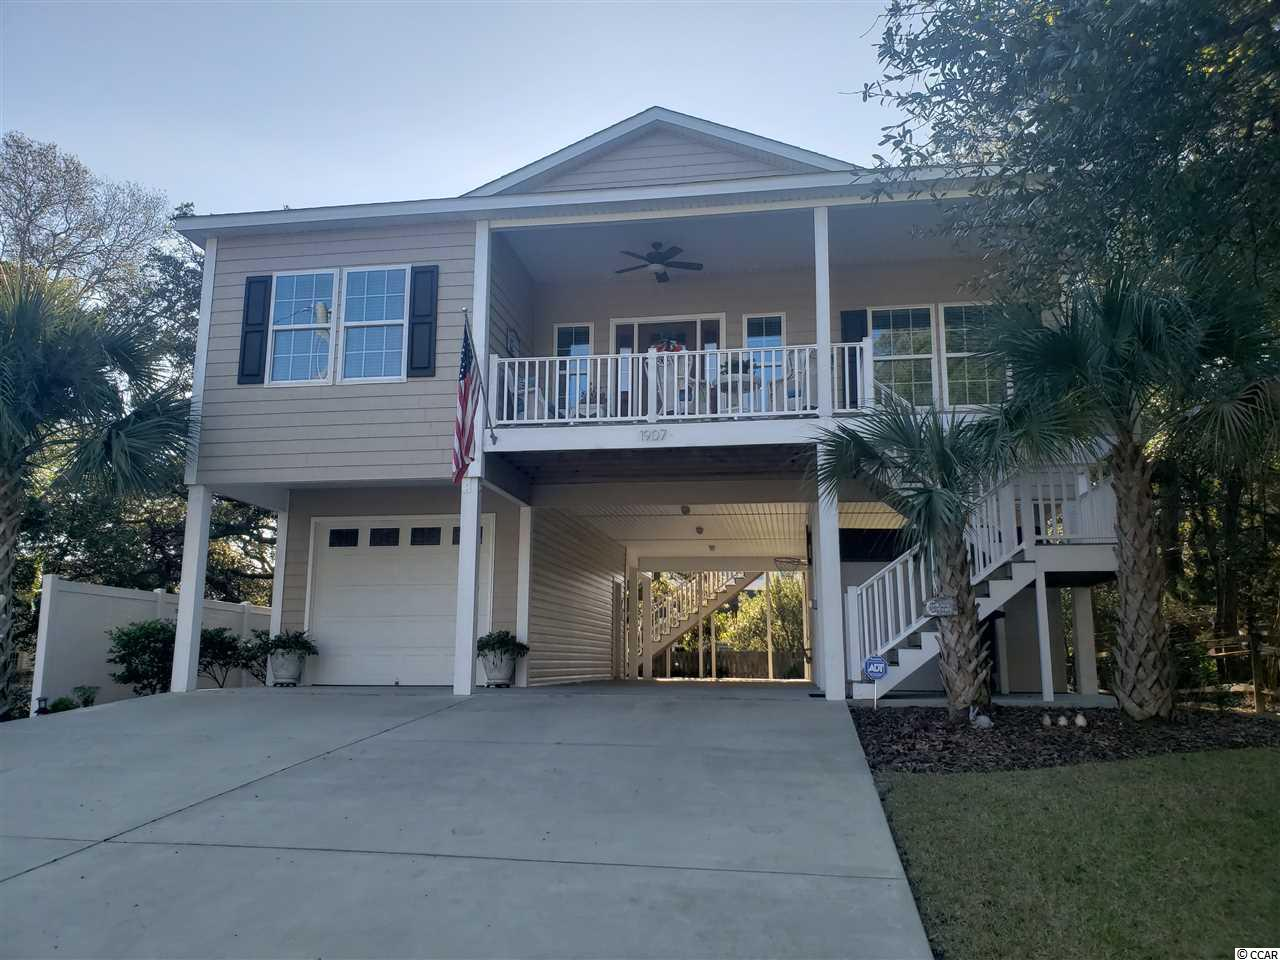 4 BR / 3 BA raised beach house in the Crescent section of NMB. Home features: 9 & 10' ceilings, crown molding, custom cabinets, granite countertops, Whirlpool stainless appliances, tile in baths, luxury laminate wood flooring in great room, carpet in bedrooms, concrete drive, full irrigation and landscaping, one car garage, etc. Large lot with hardwood trees and room for a pool. Chair lift / elevator off rear porch.